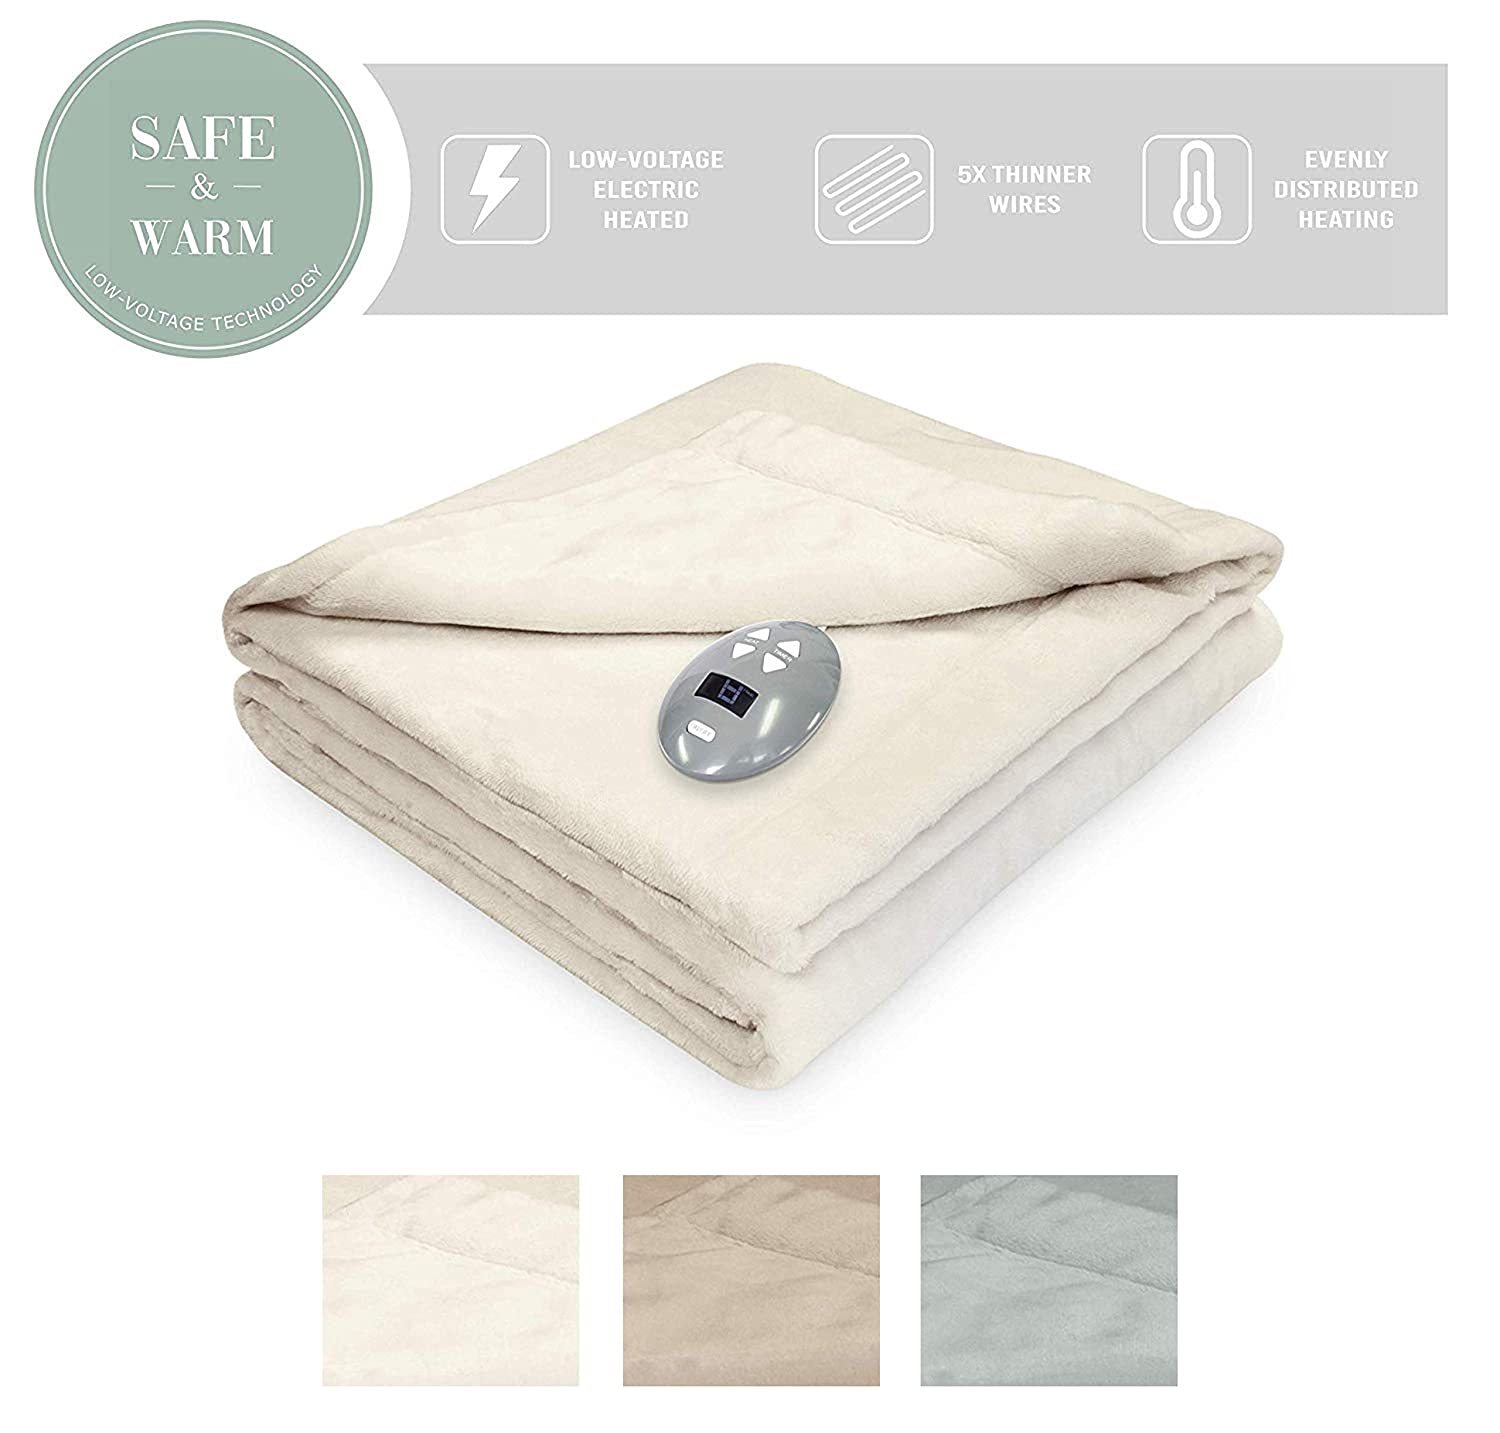 Luxurious Velvet Plush Heated Electric Warming Blanket with Safe /& Warm Low-Voltage Technology 856634 SoftHeat by Perfect Fit Full, Natural Vanilla